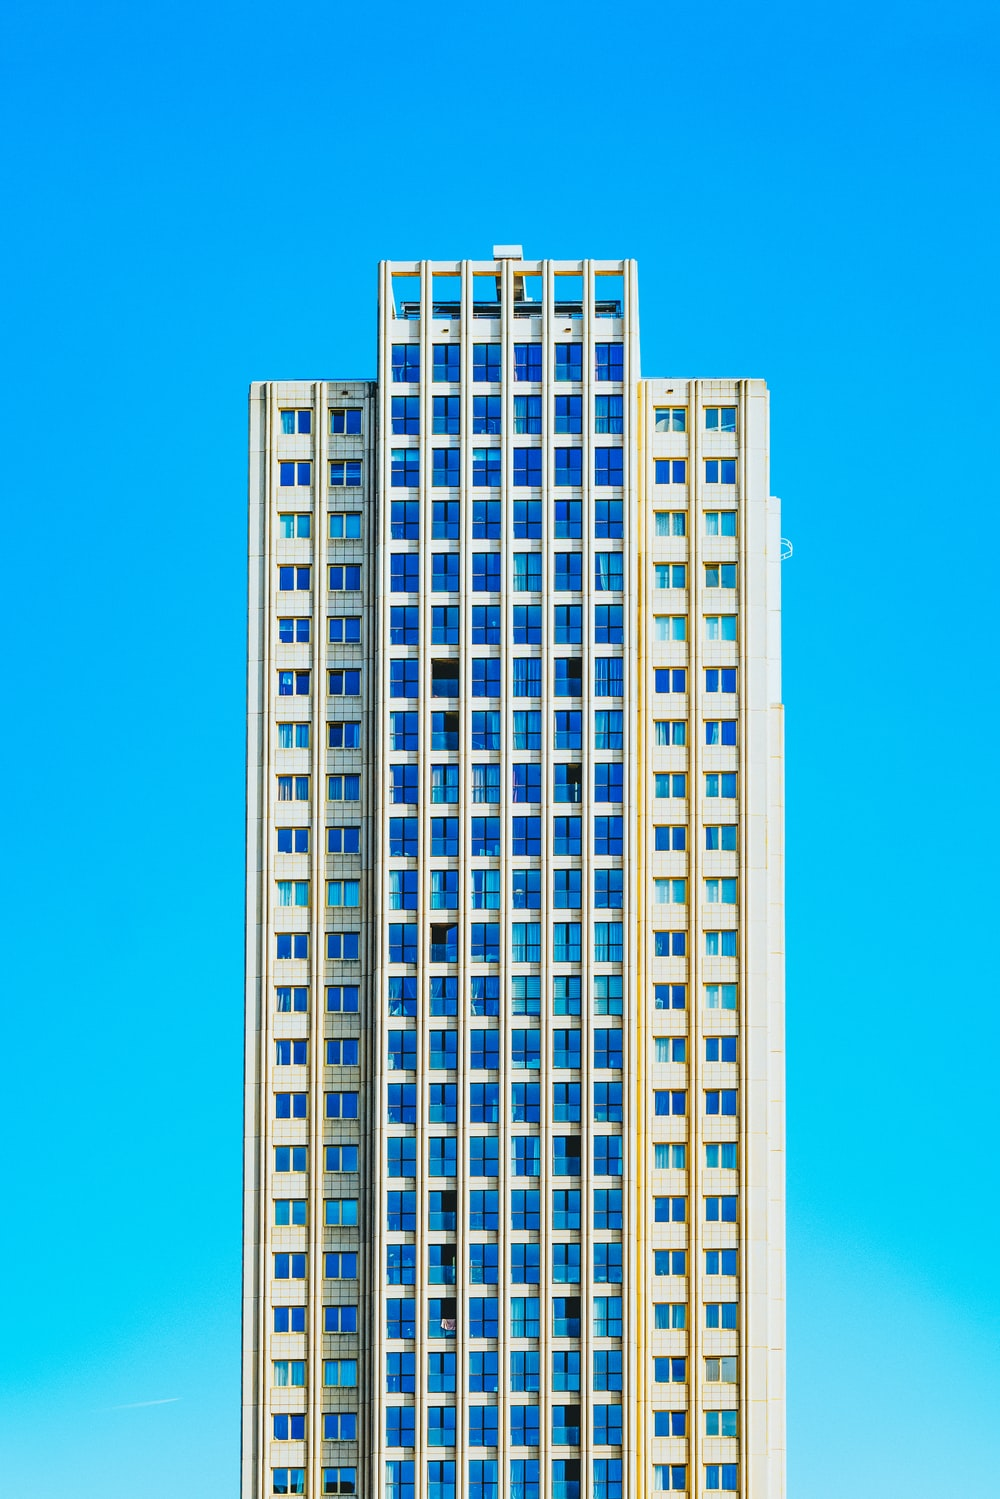 blue and beige high-rise buildings